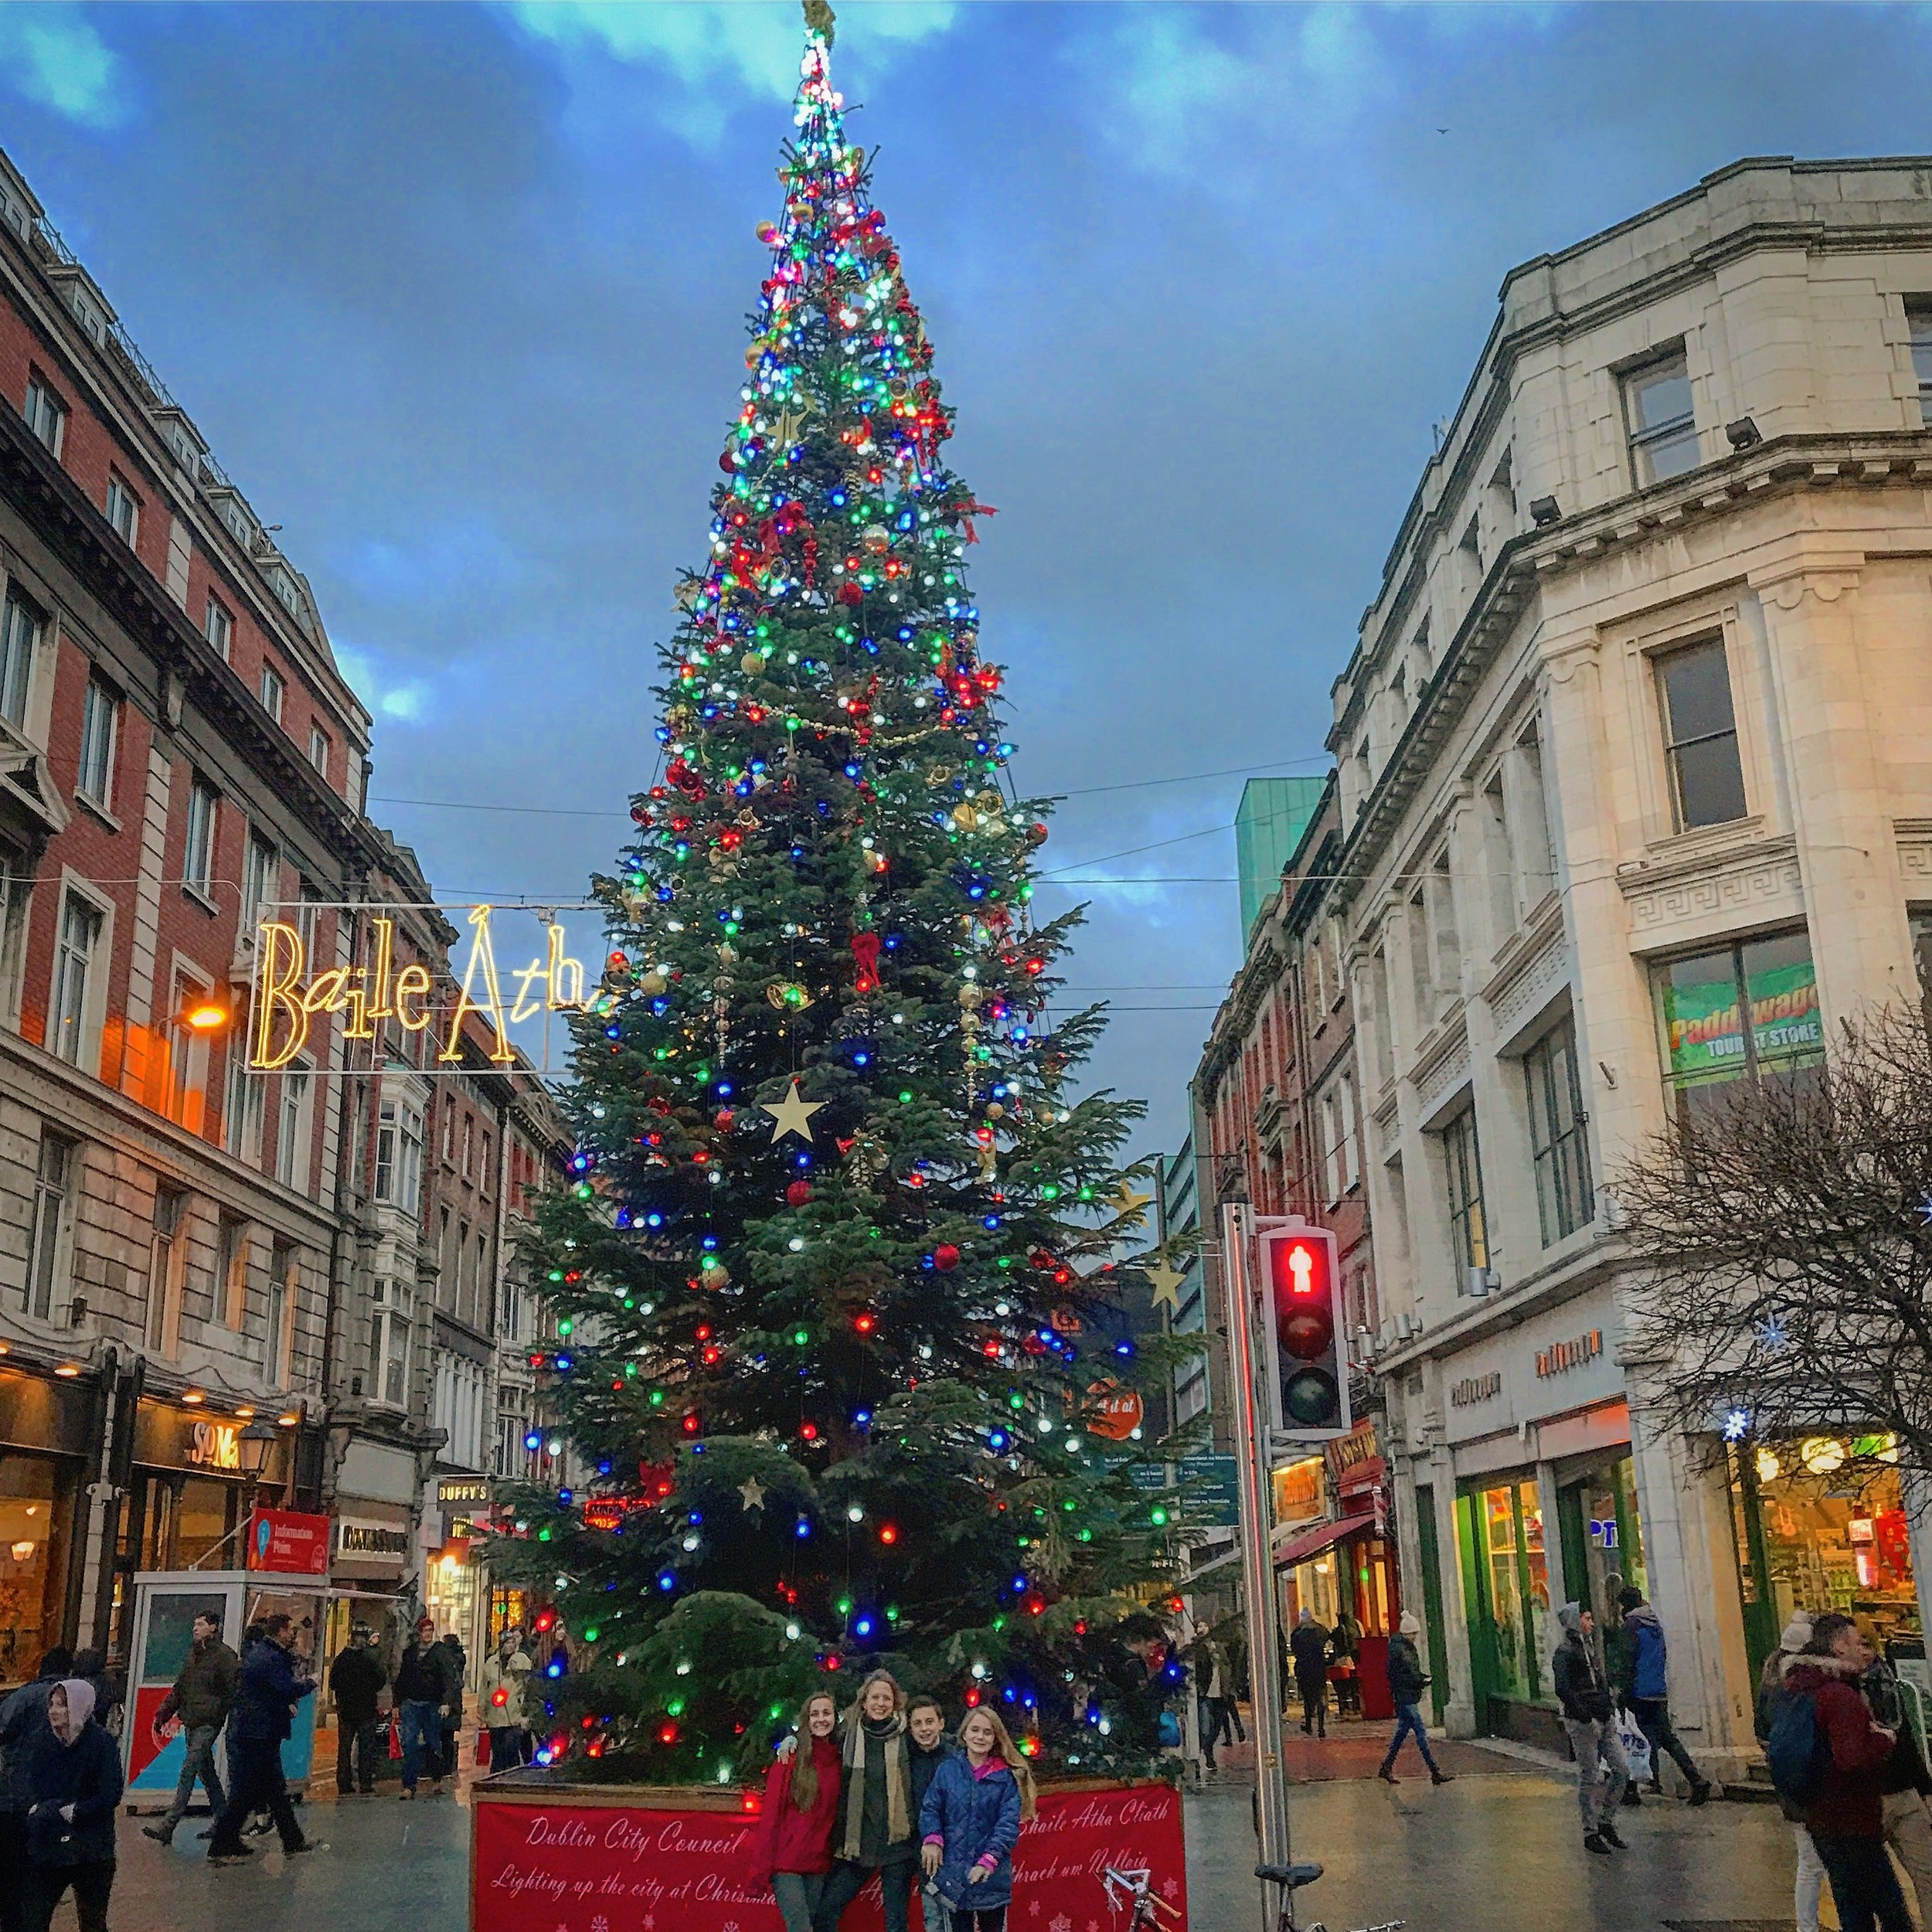 Dublin Christmas Tree